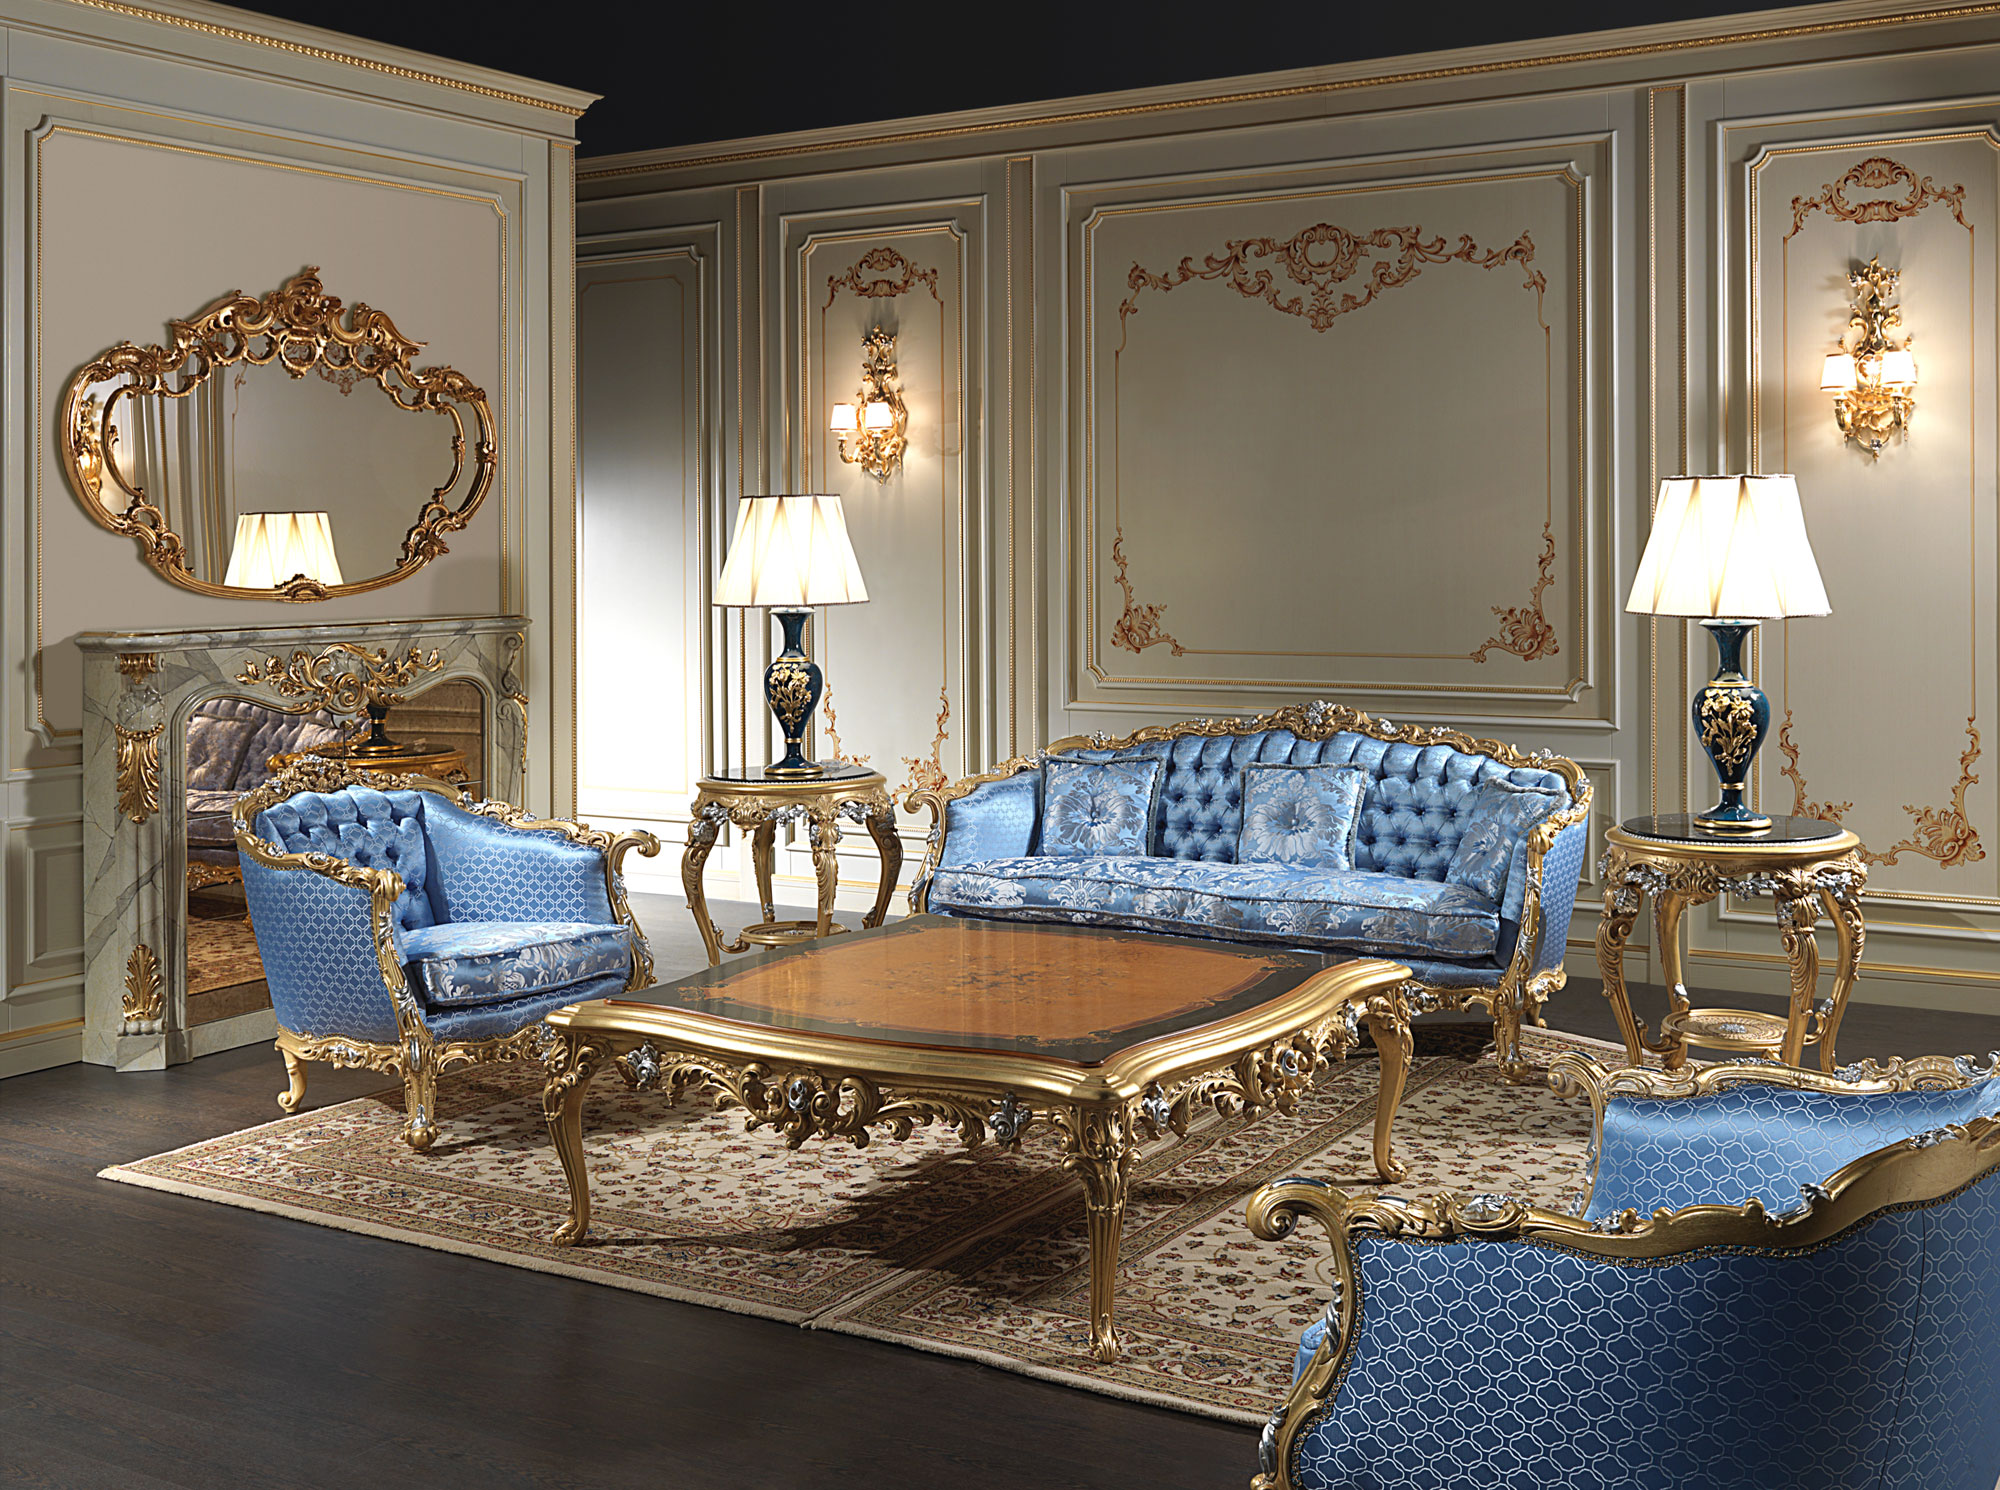 Living Room Made In Italy Eighteenth Century Vimercati Classic Furniture